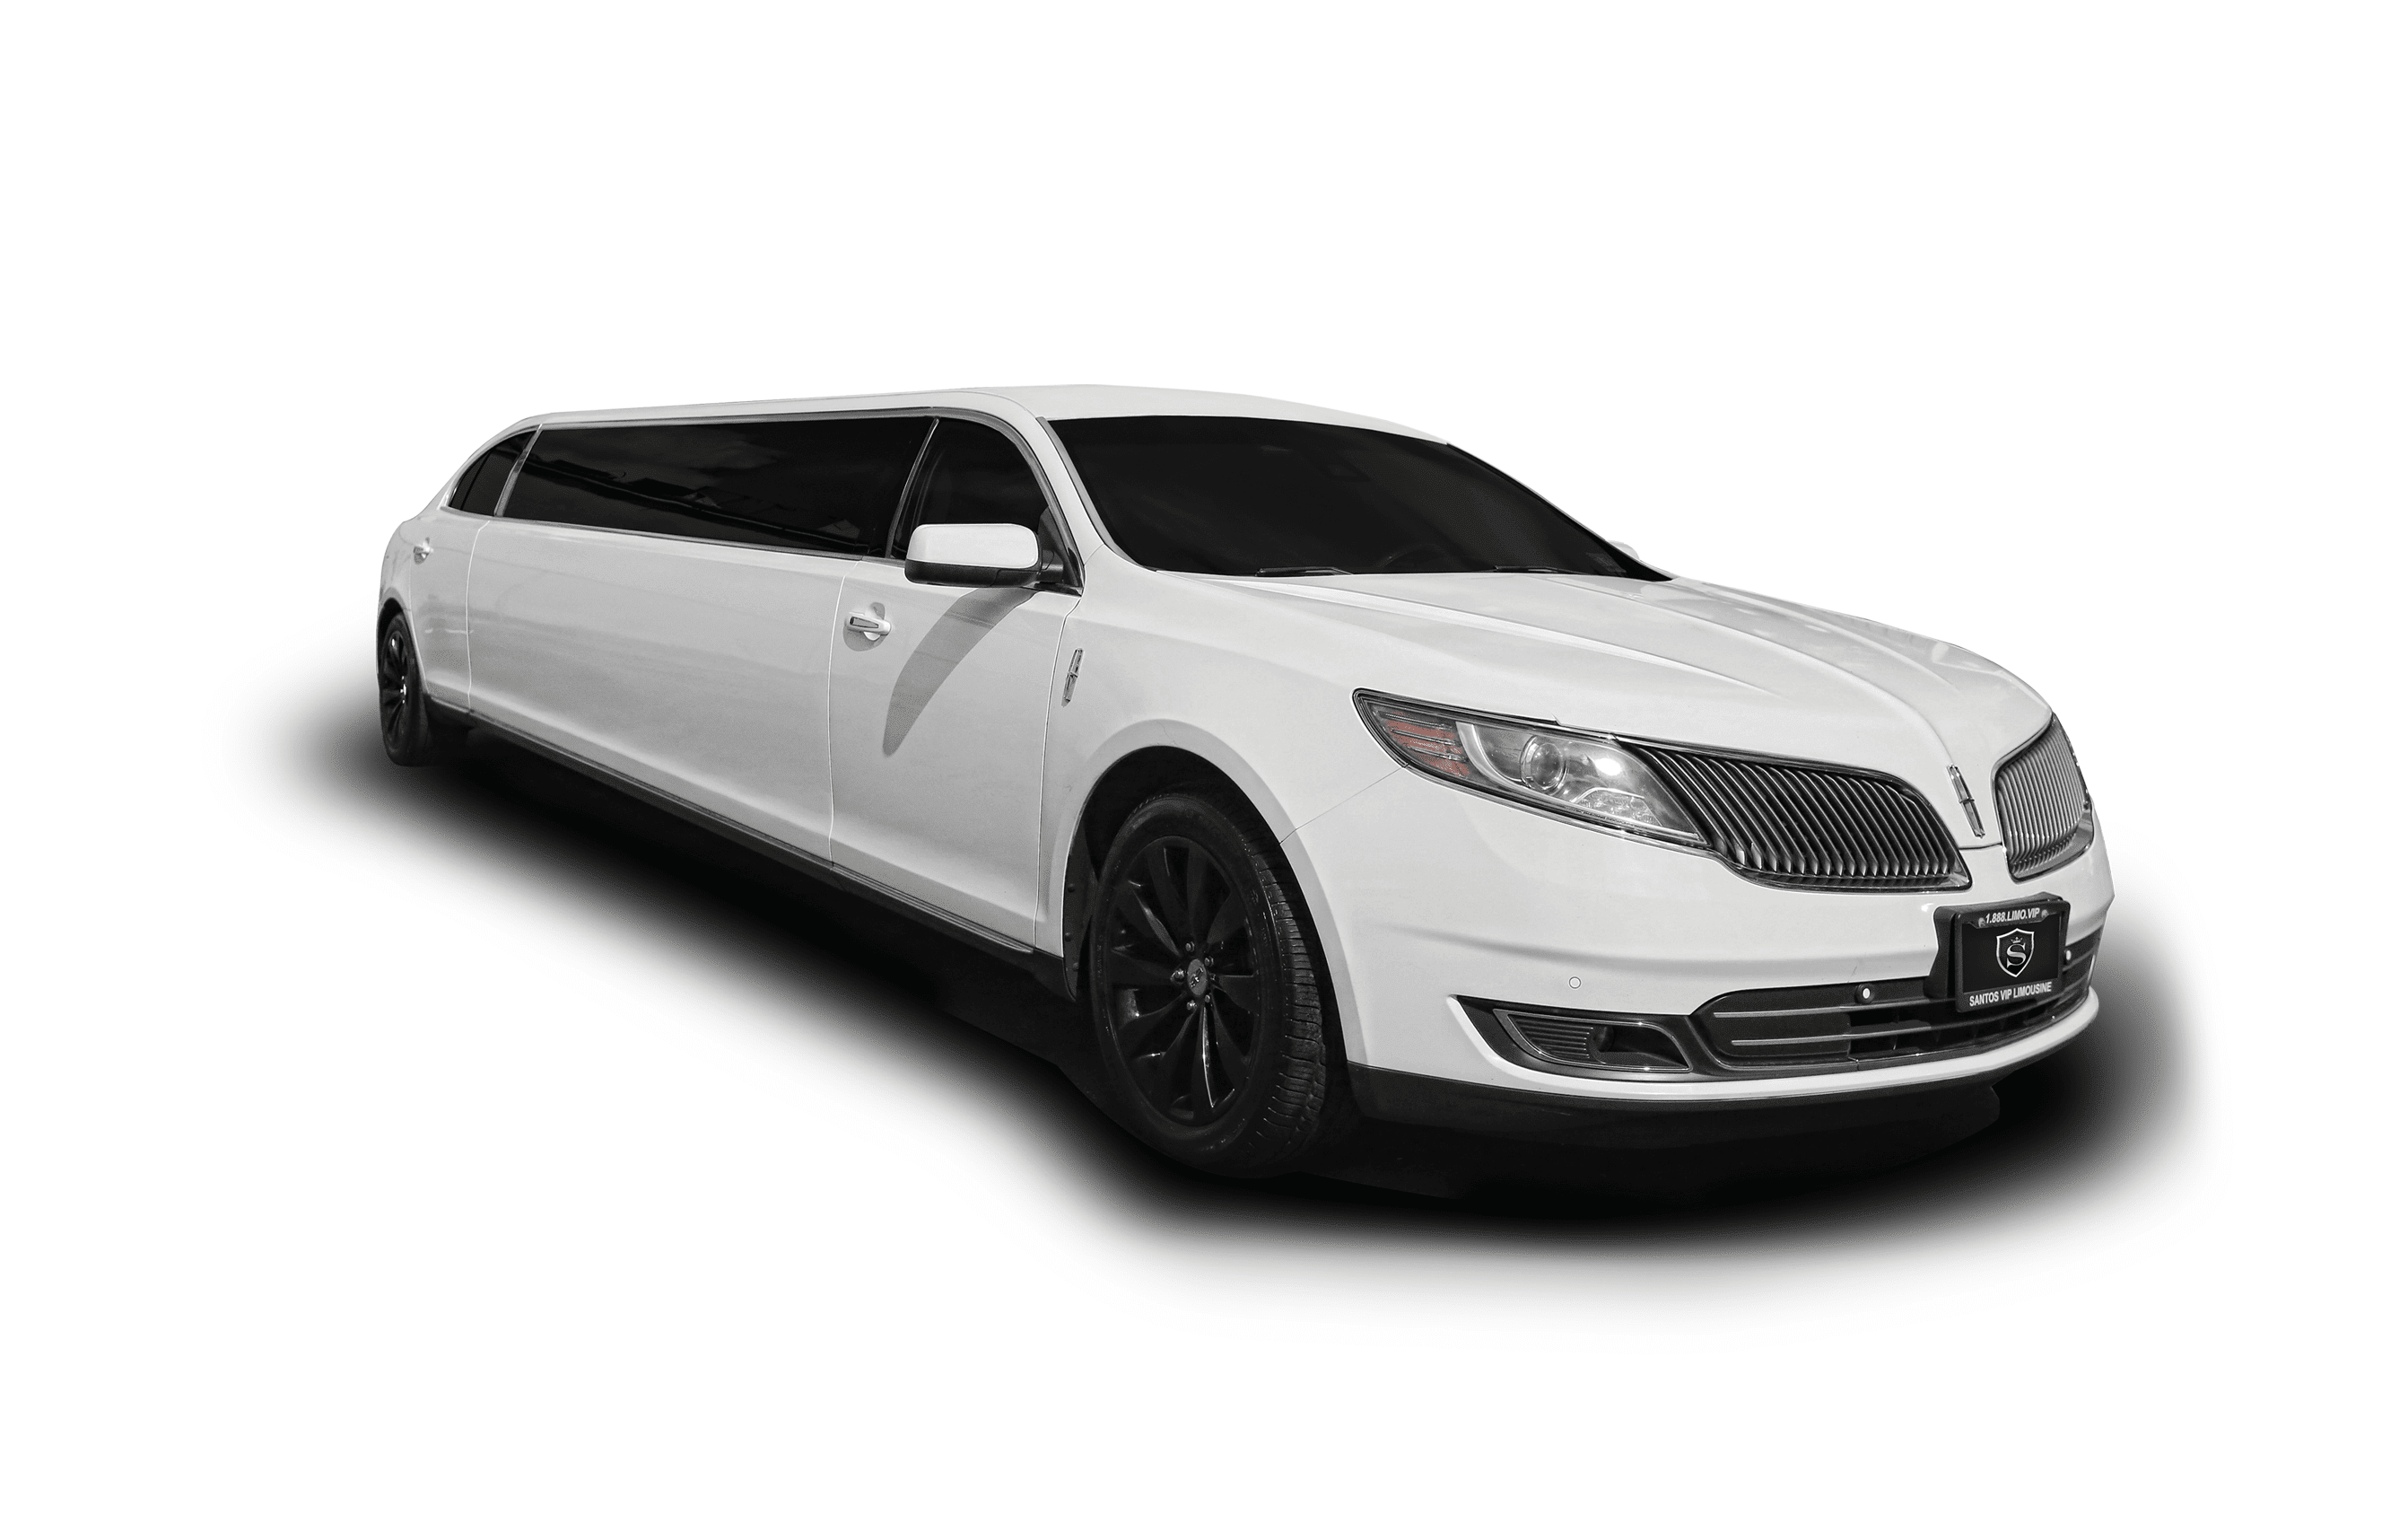 NJ Winery Tour - Lincoln MKS Stretch Limousine